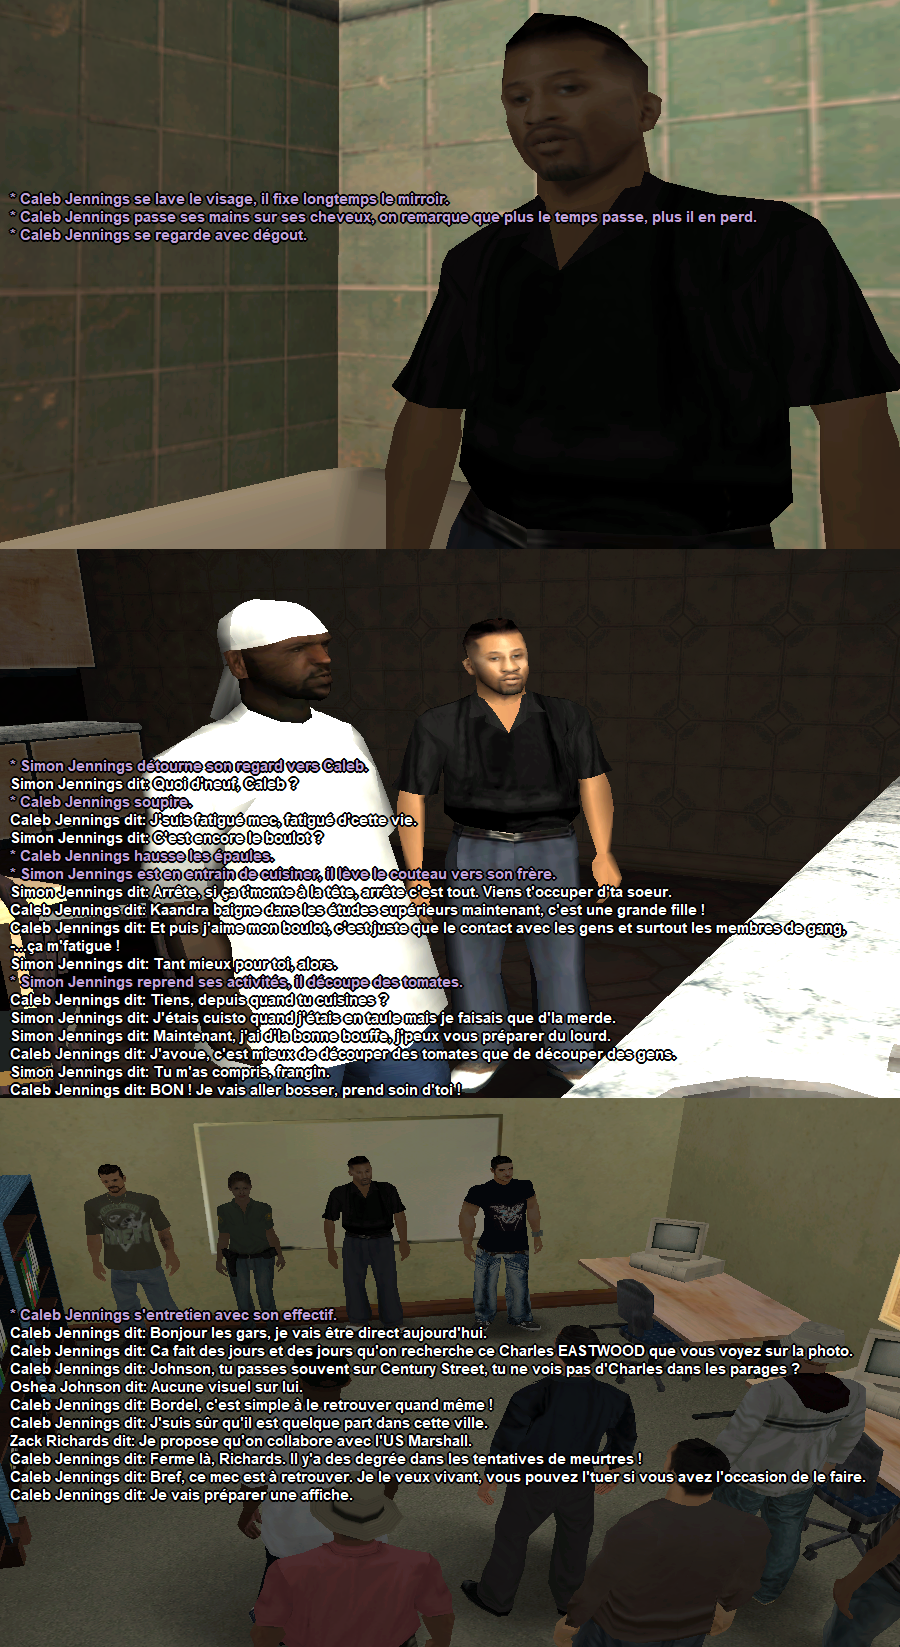 Los Santos Sheriff's Department - A tradition of service (8) - Page 16 1535904768-a